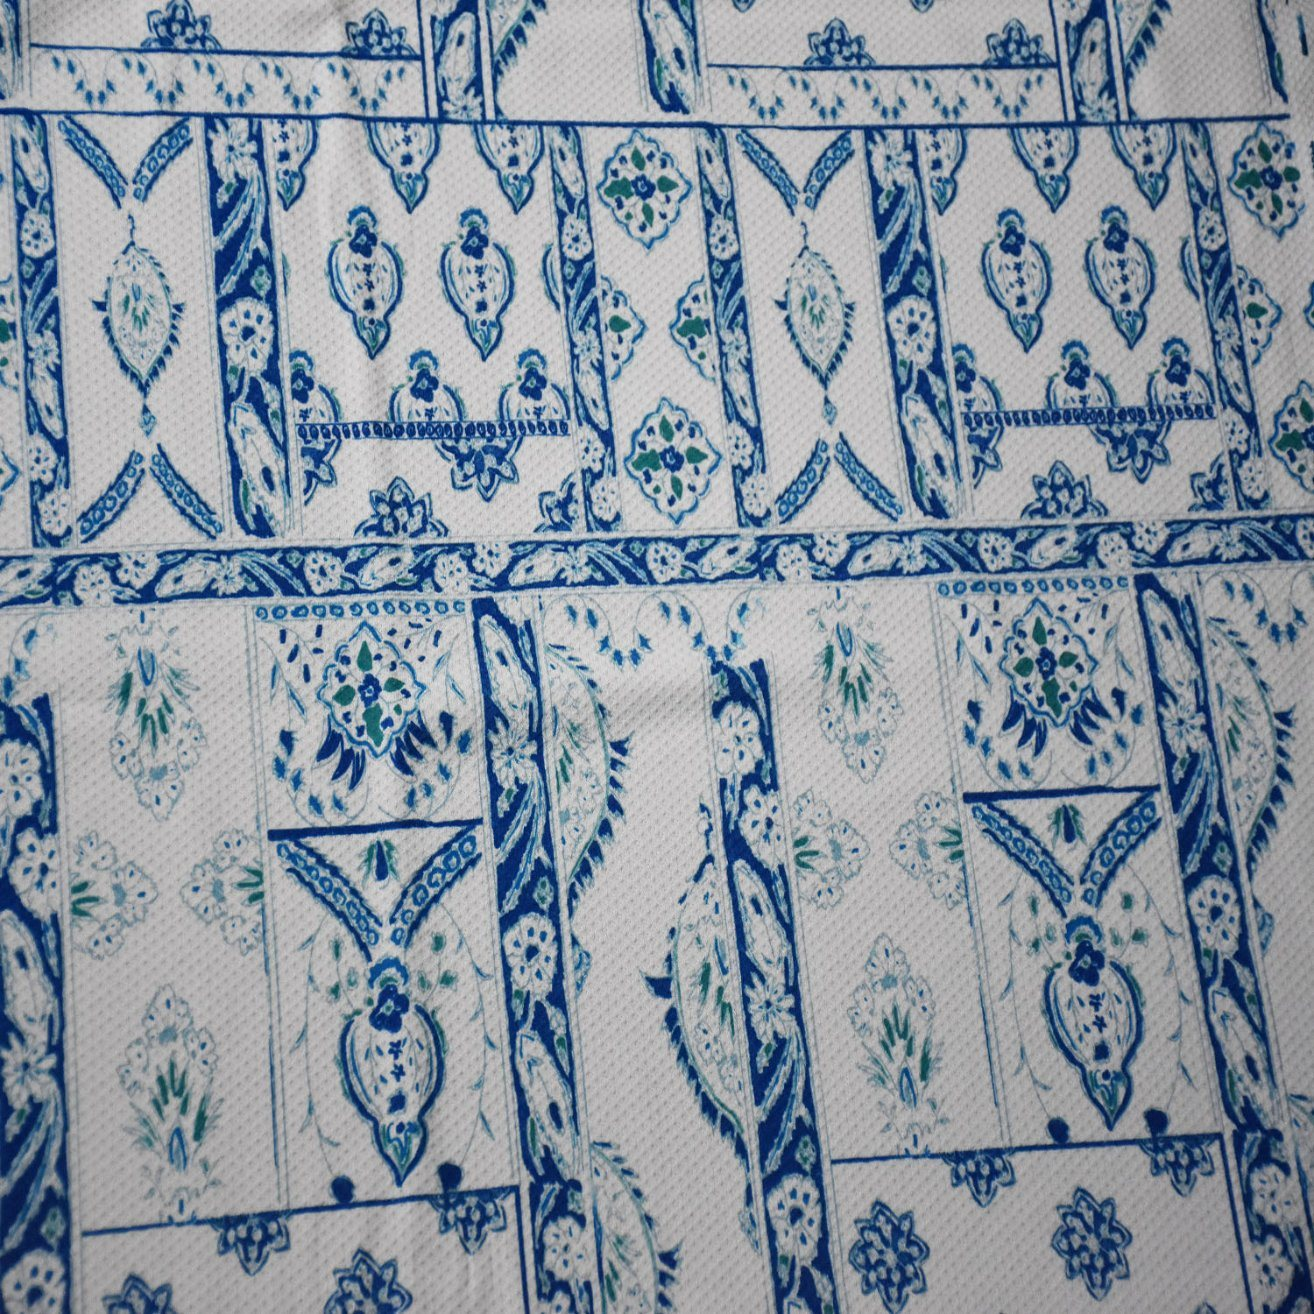 Polyester/Spandex Printed Jacquard Fabric for Clothing